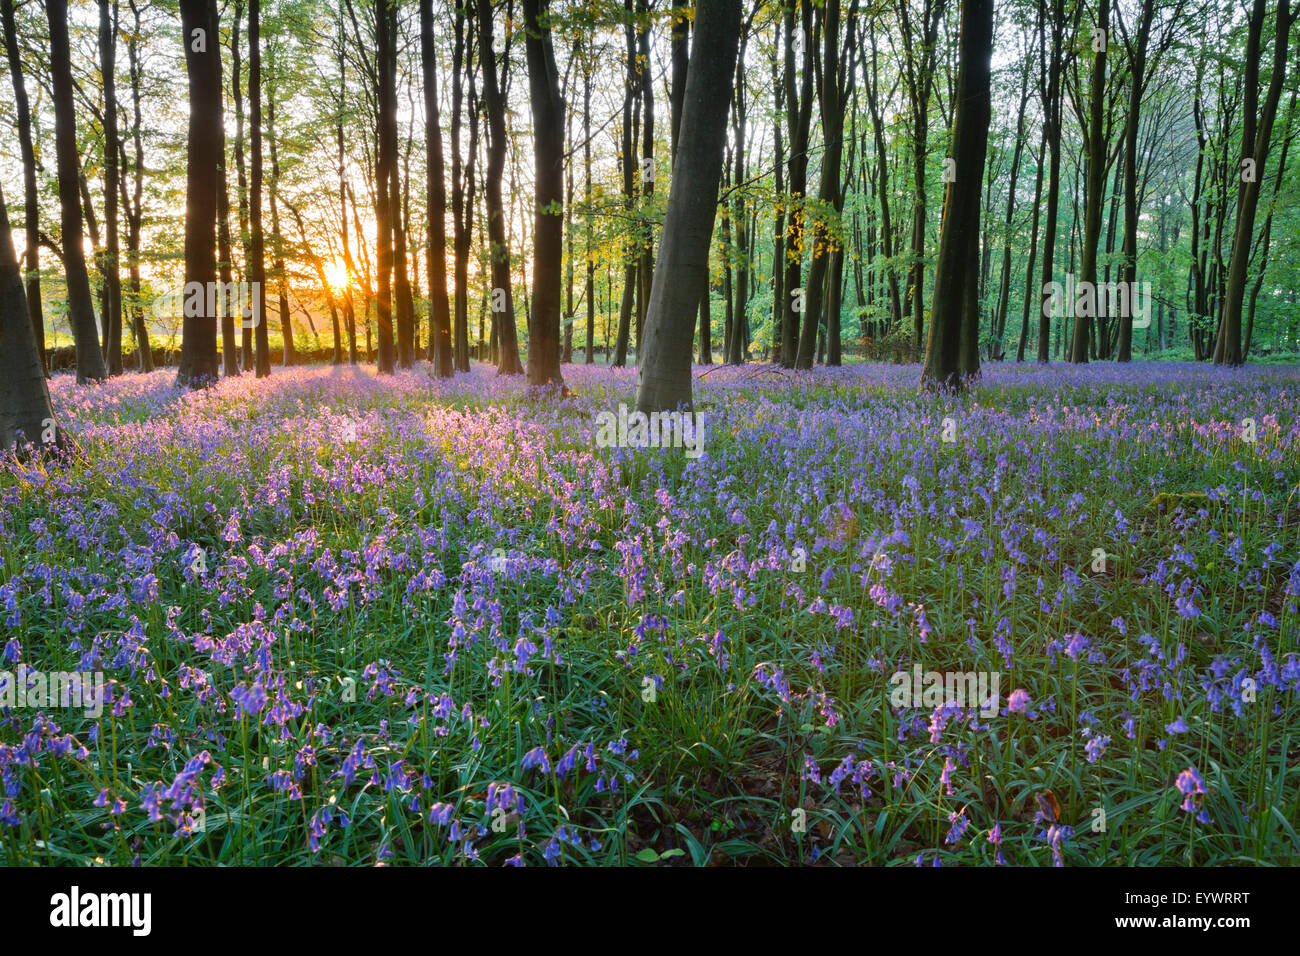 Bluebell wood, Stow-on-the-Wold, Cotswolds, Gloucestershire, England, United Kingdom, Europe Stock Photo